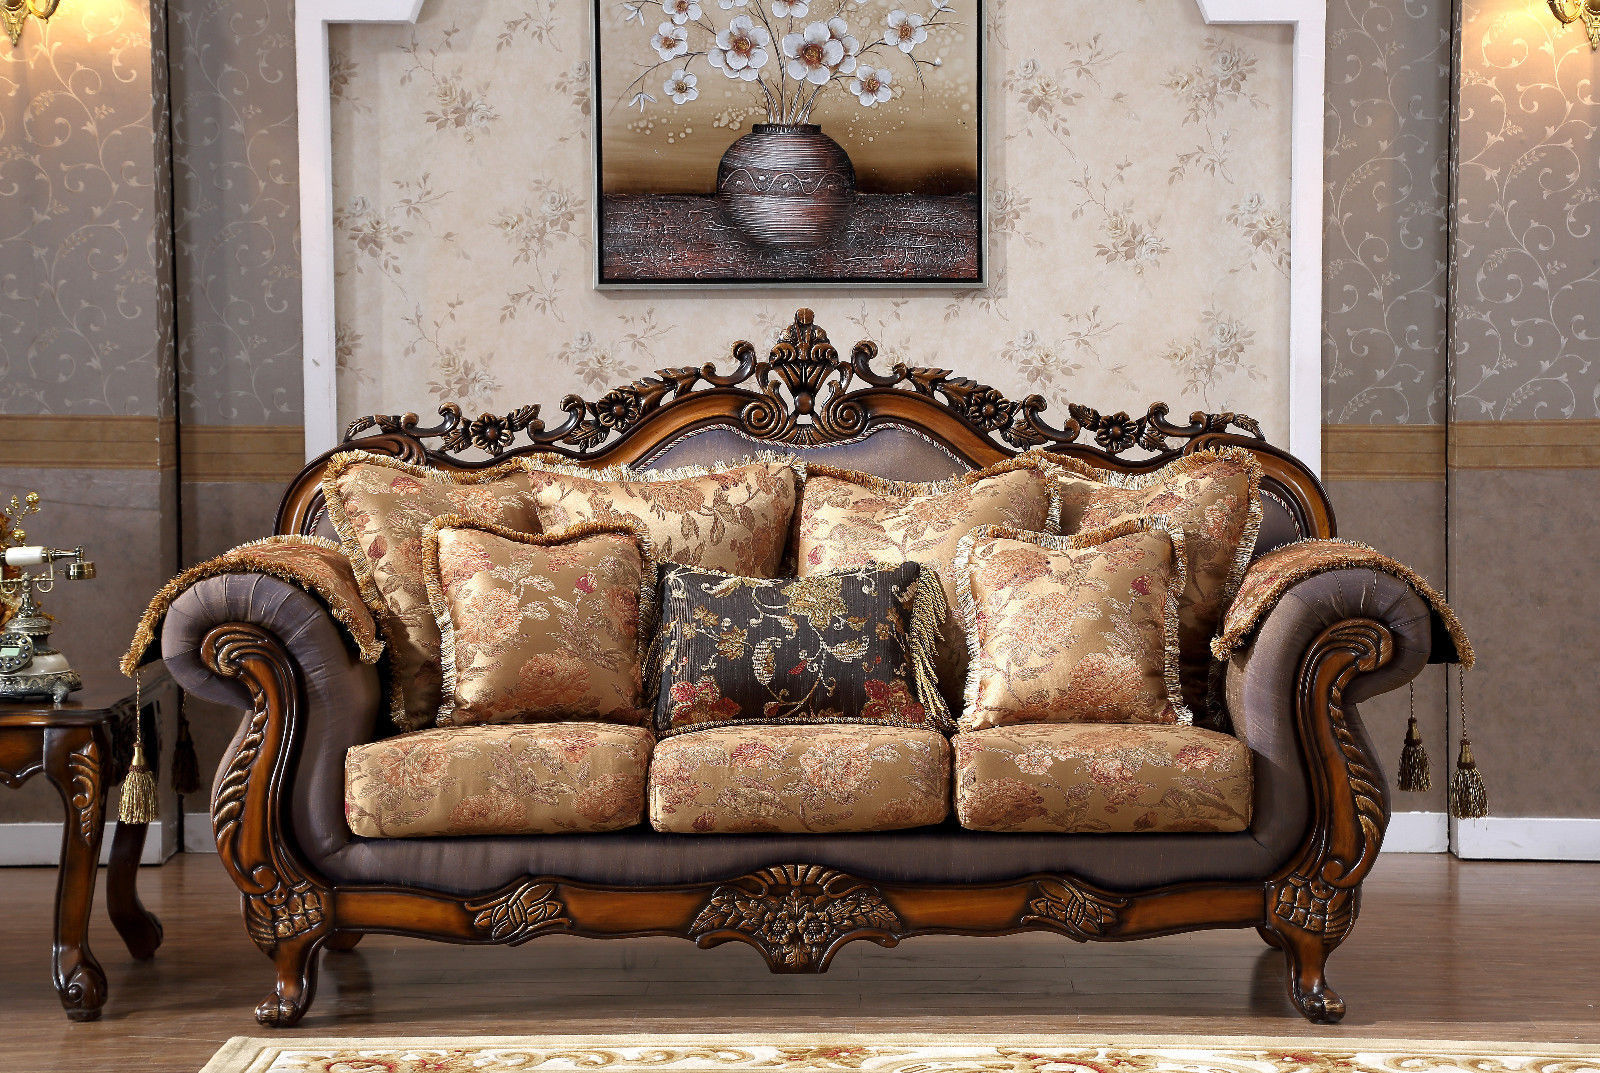 Meridian 693 Cherry Fabric Living Room Sofa Set 2pc. Traditional Style